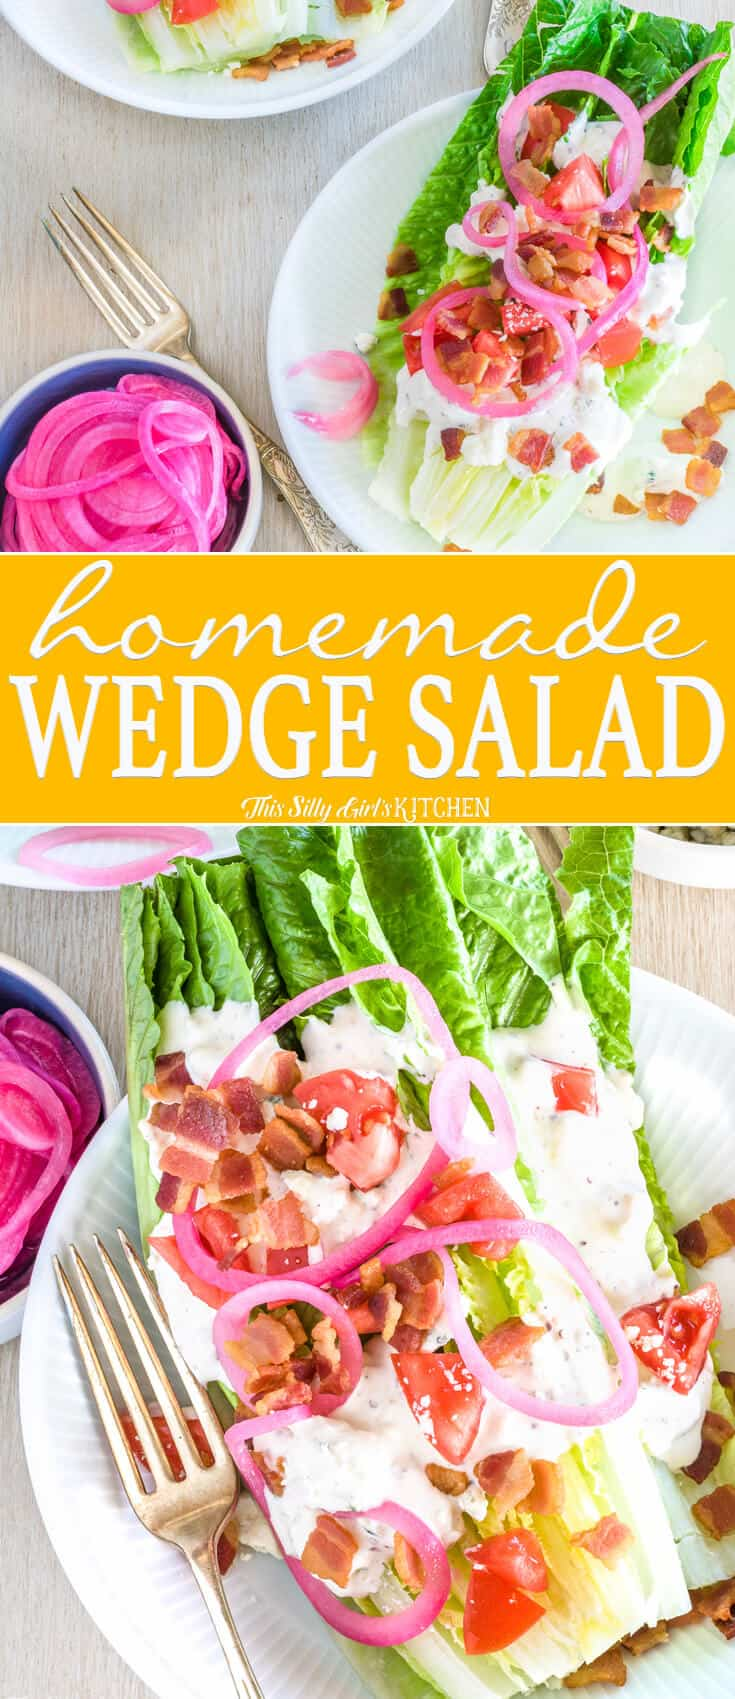 Romaine Wedge Salad, the classic wedge salad updated with pickled onions, homemade blue cheese dressing, and #BACON! #Recipe from ThisSillyGirlsKitchen.com #wedgesalad #salad #lunch #bluecheese